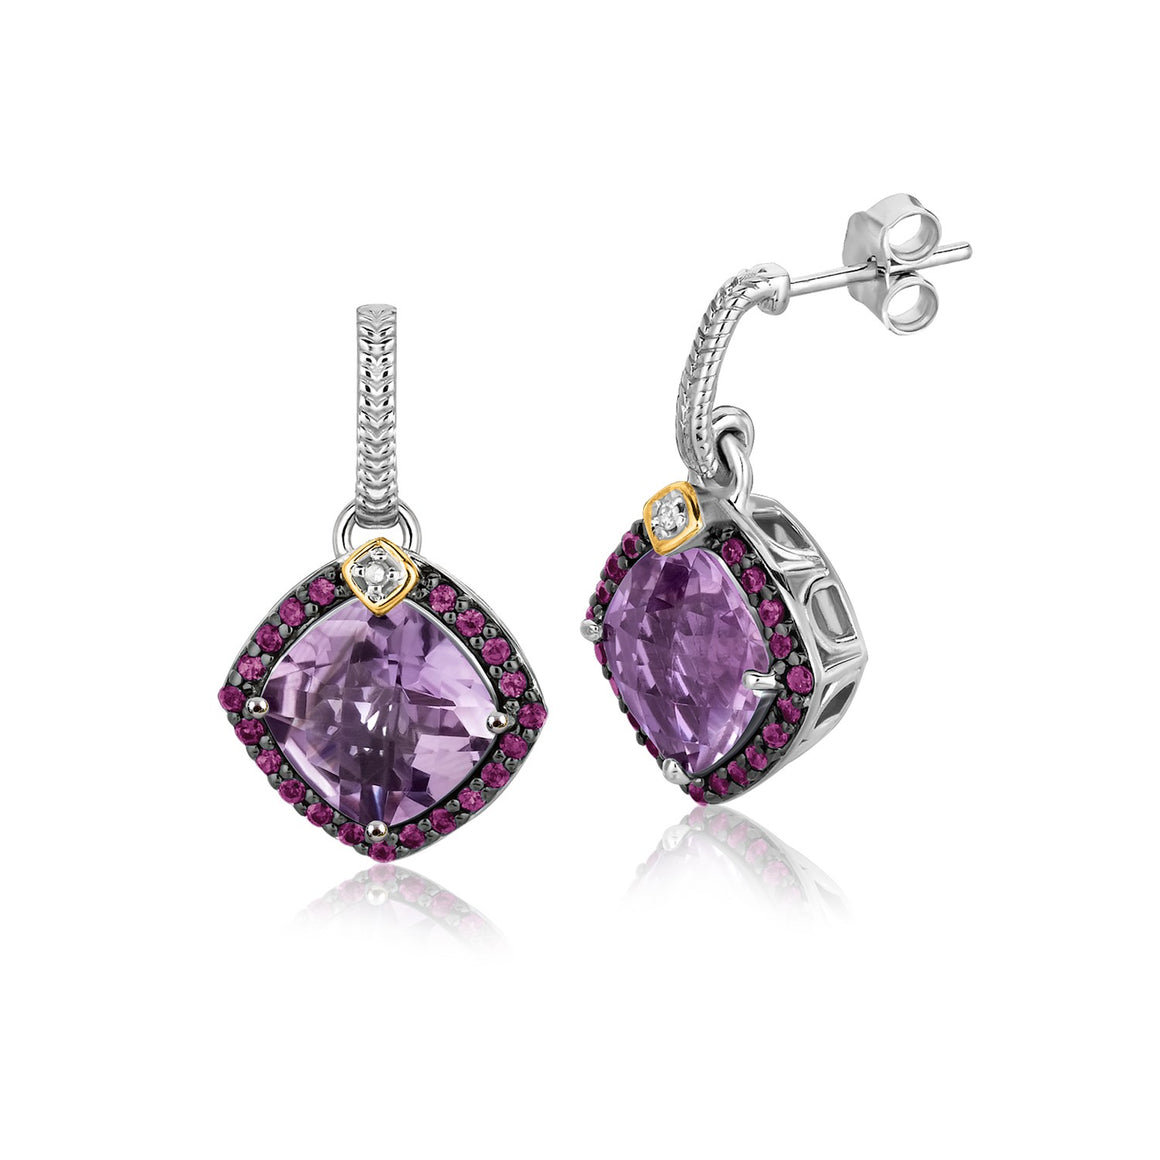 18k Yellow Gold and Sterling Silver Purple Tone Gem Drop Earrings (.43 cttw)